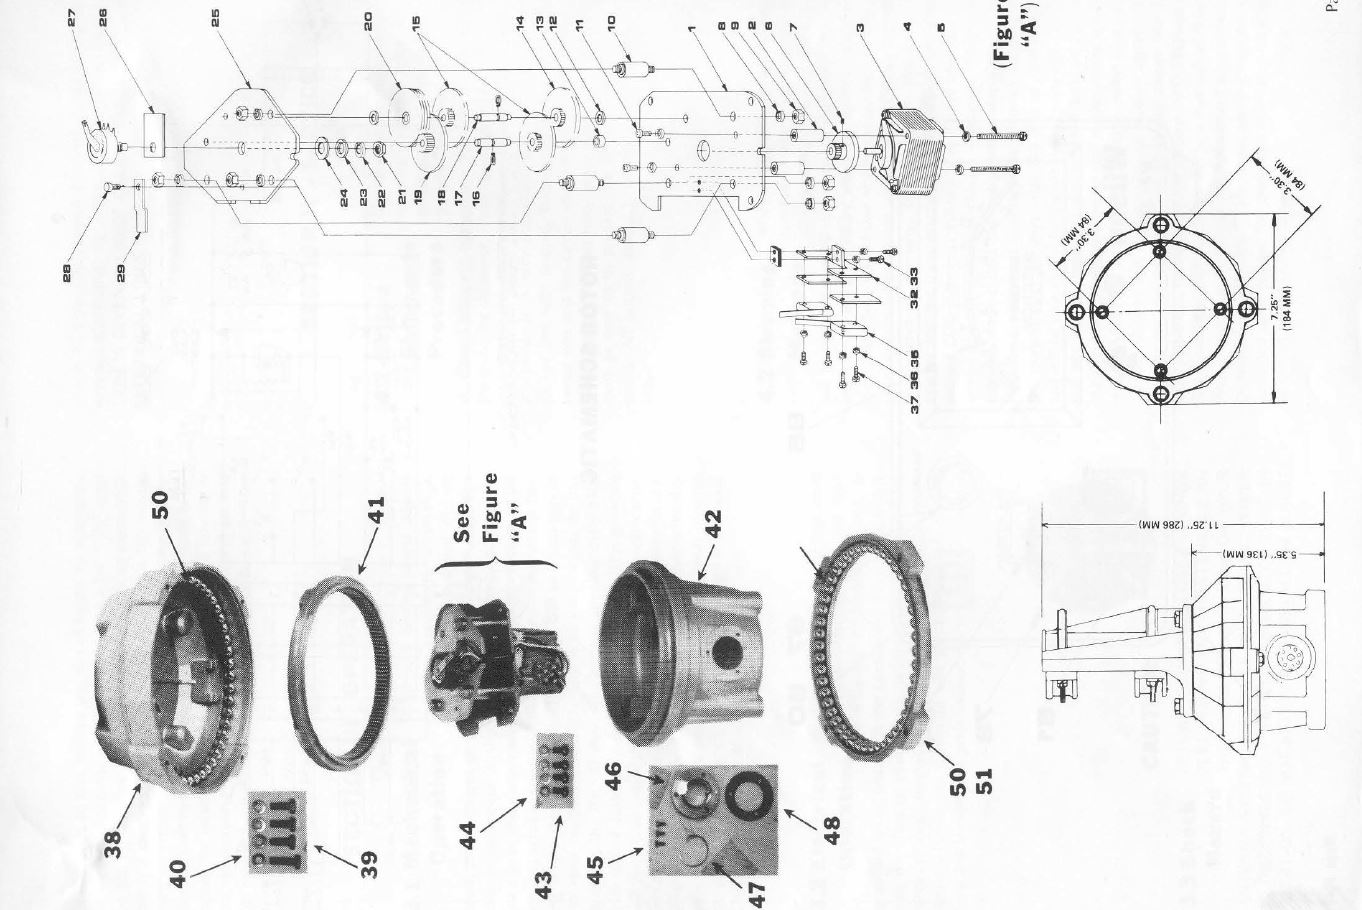 WILSON WR-500 EXPLODED VIEW.JPG